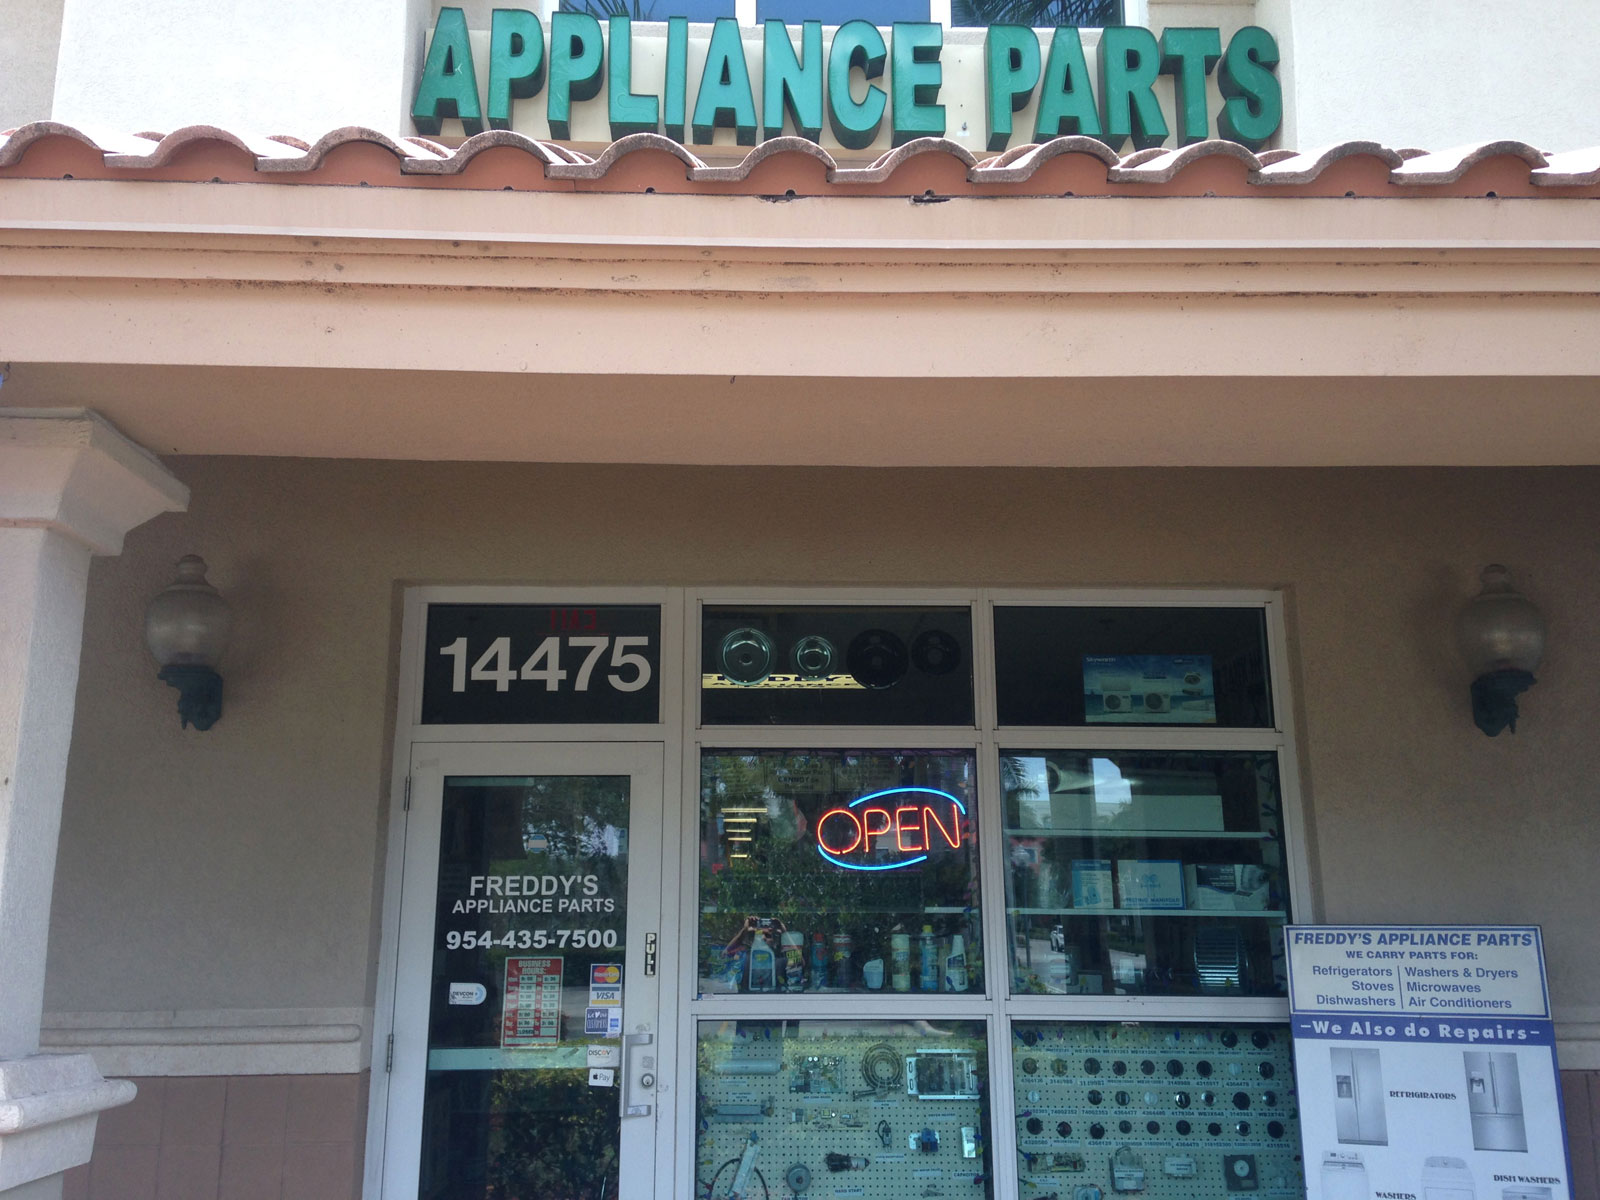 Freddy S Appliance Parts 14475 Miramar Parkway Miramar Fl 33027